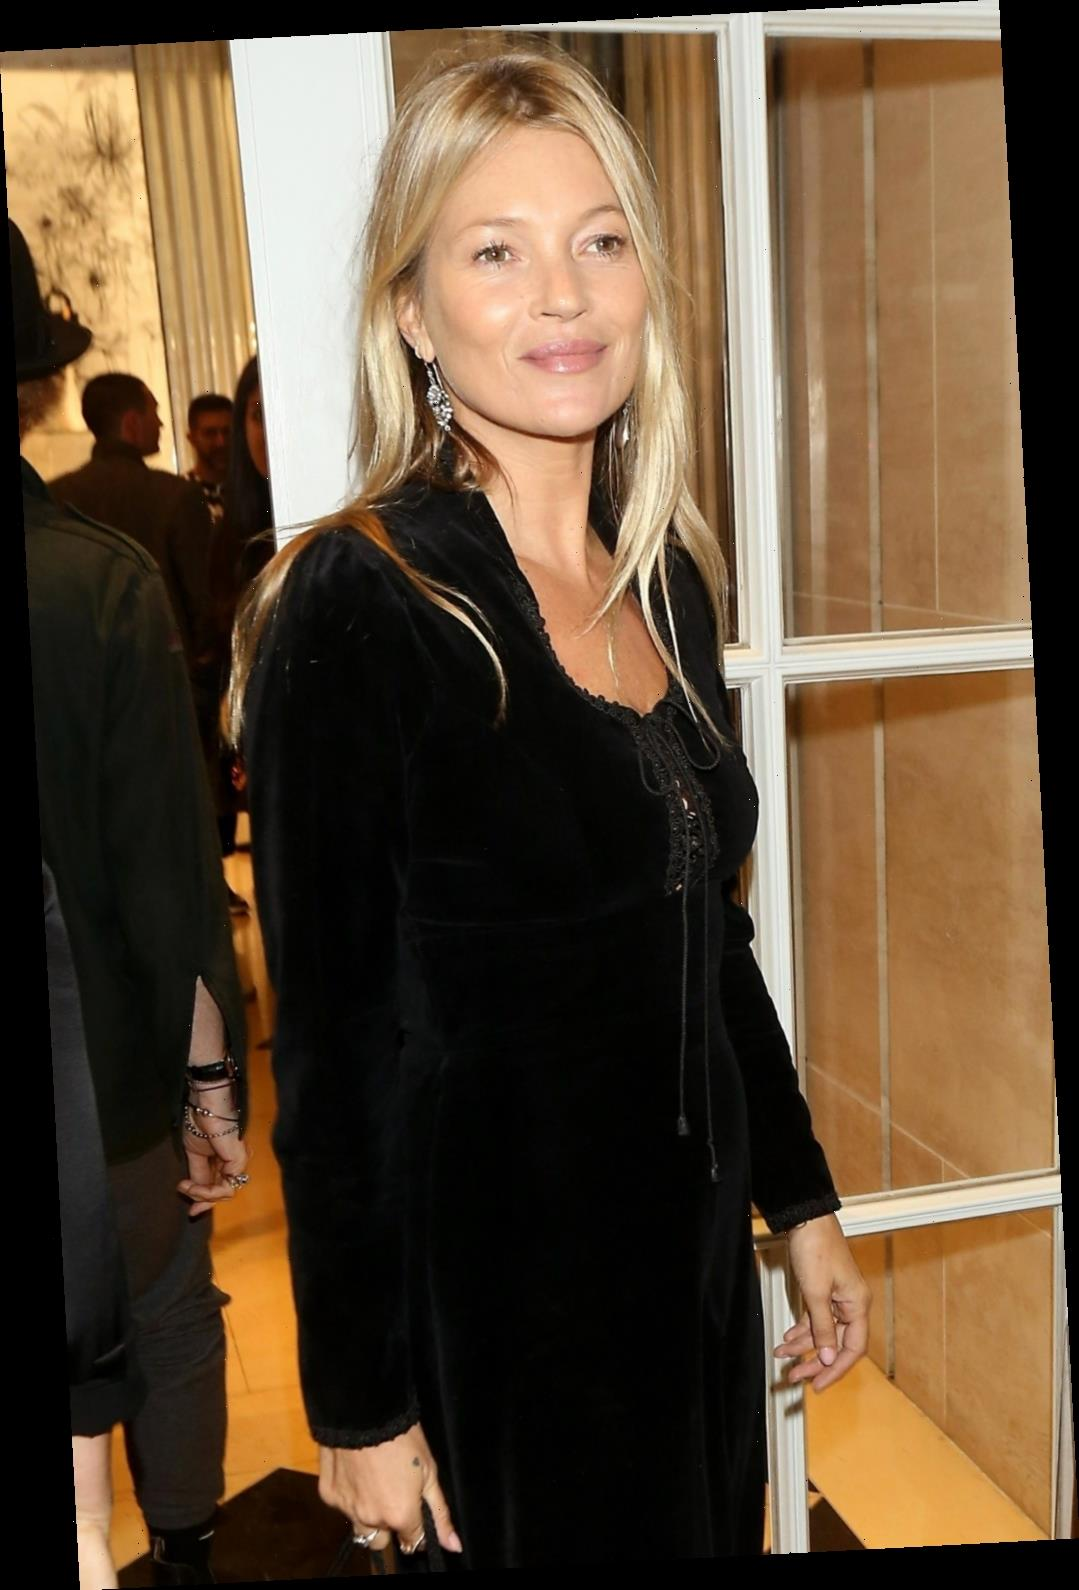 Kate Moss's jewelry idol: 'Elizabeth Taylor, nobody loved jewelry more than her'